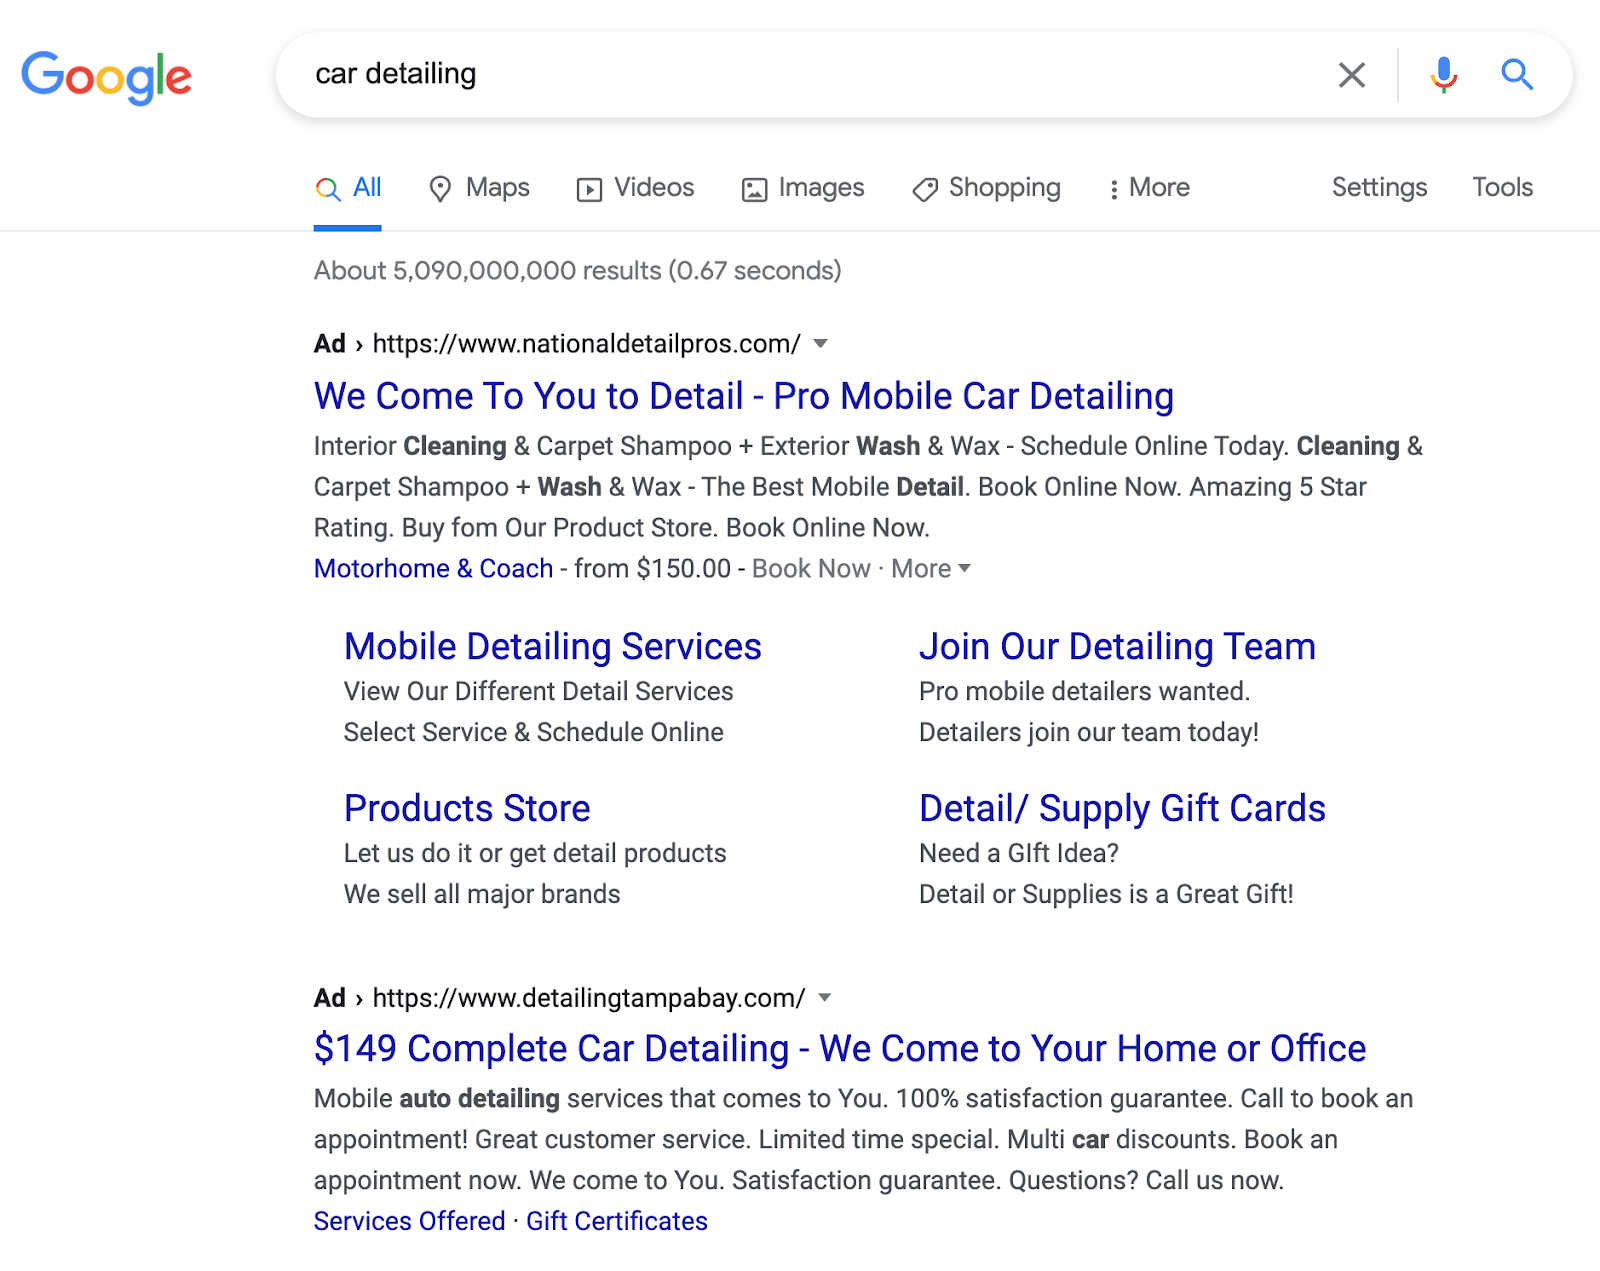 An example of a Google Ad for a car detailing company.